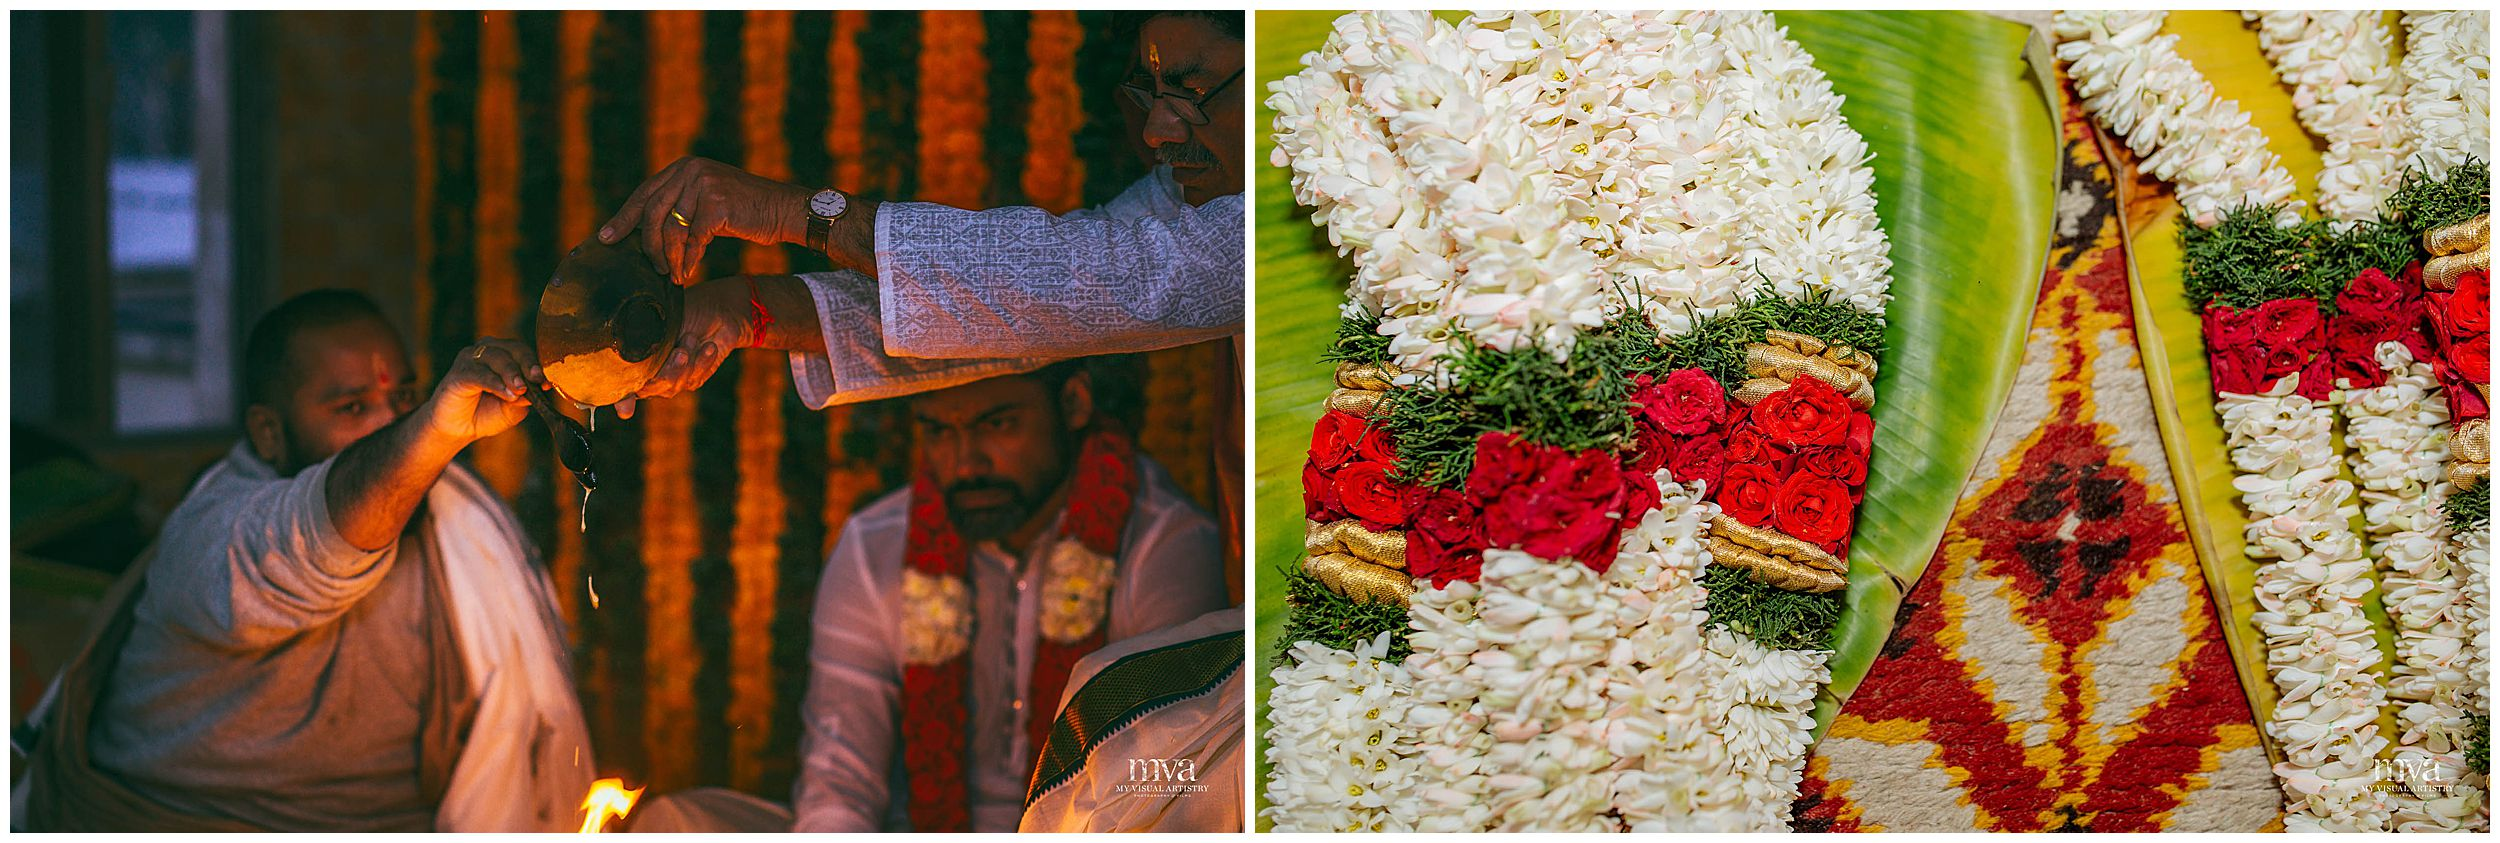 SAHIBA_KARTHIK_MYVISUALARTISTRY_WEDDING_PHOTOGRAPHY_MVA_KERALA_GURGAON_0031.jpg